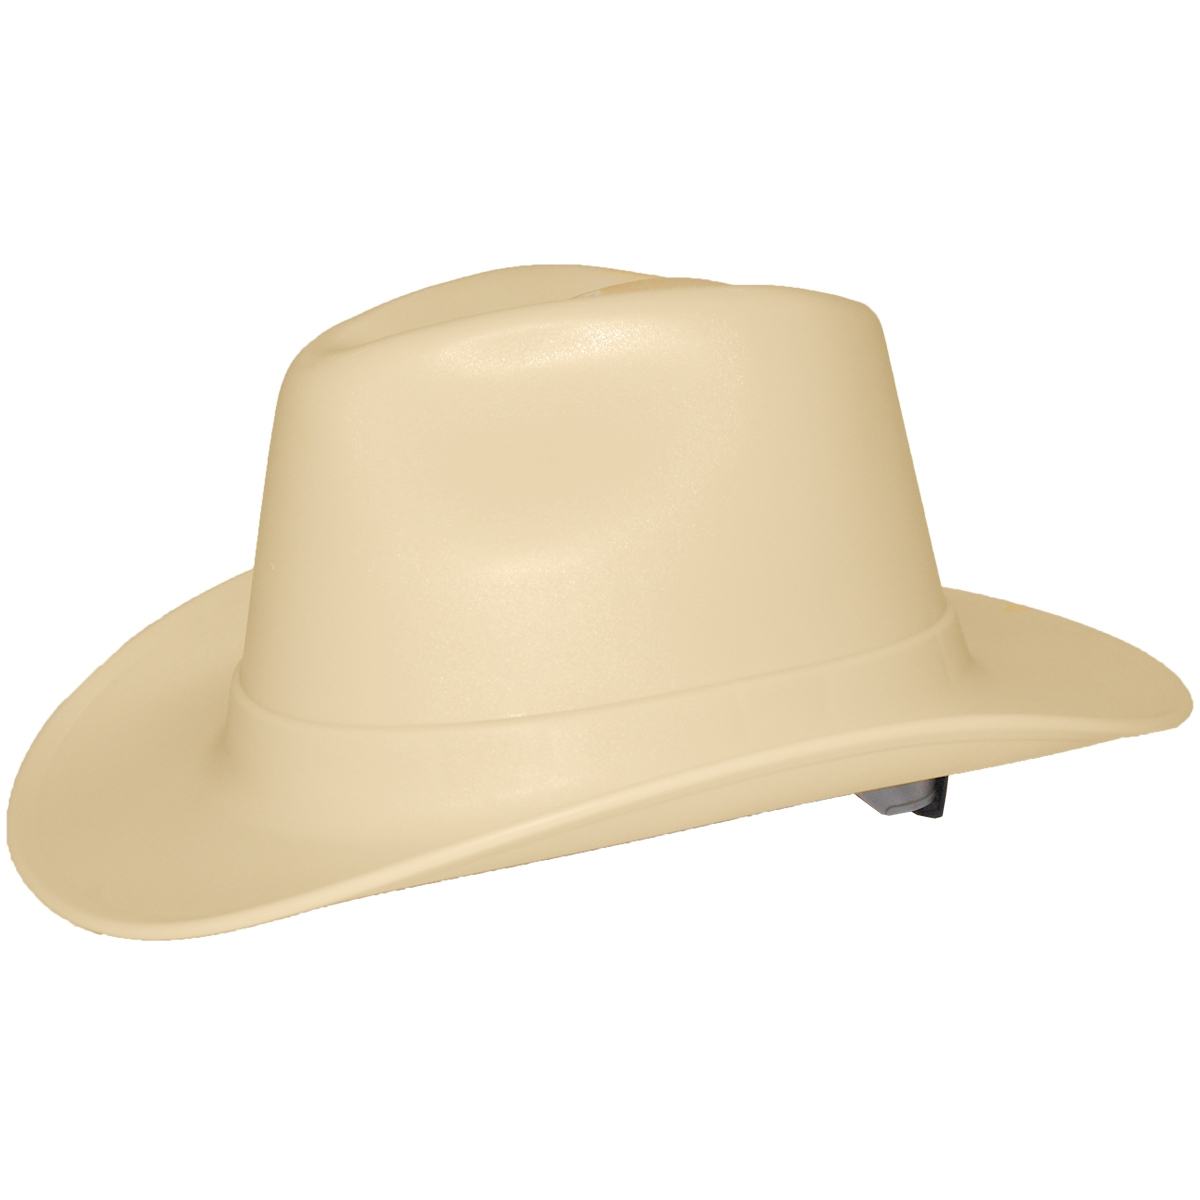 27a88518689 Vulcan VCB100 Cowboy Hard Hat - 6-Point Pinlock Suspension - Tan ...